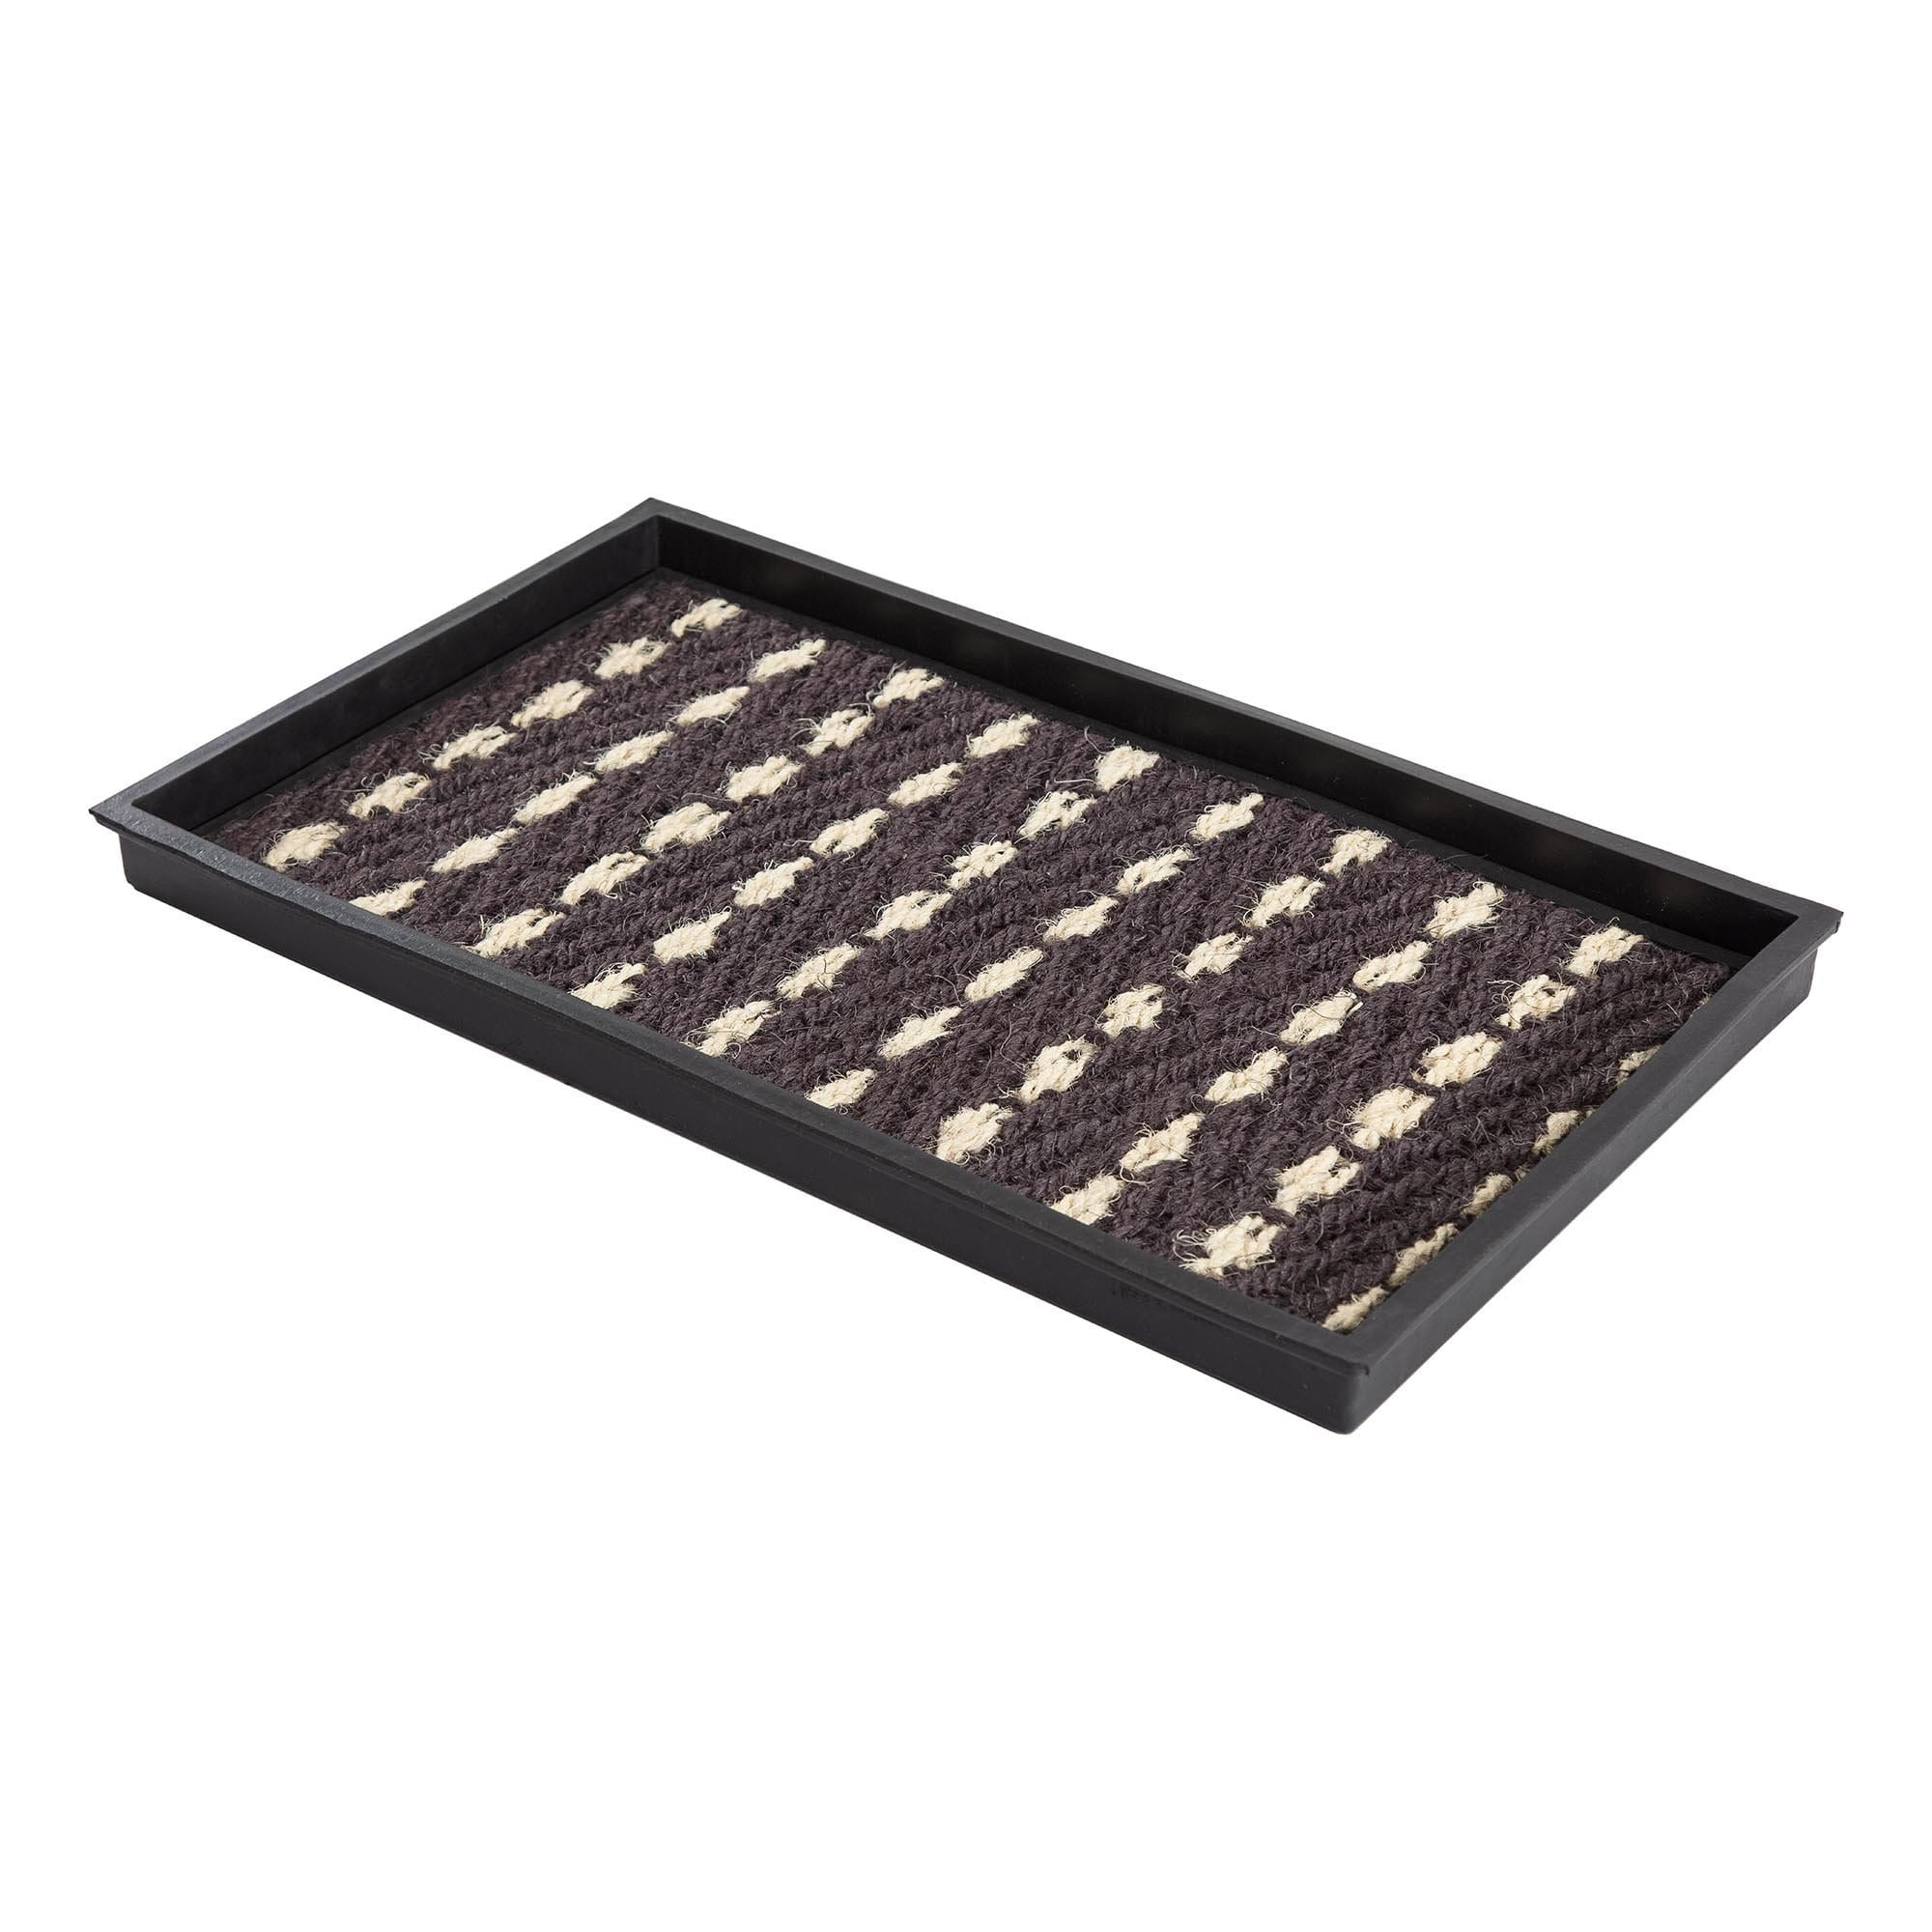 Boot Tray - Black/White (008)